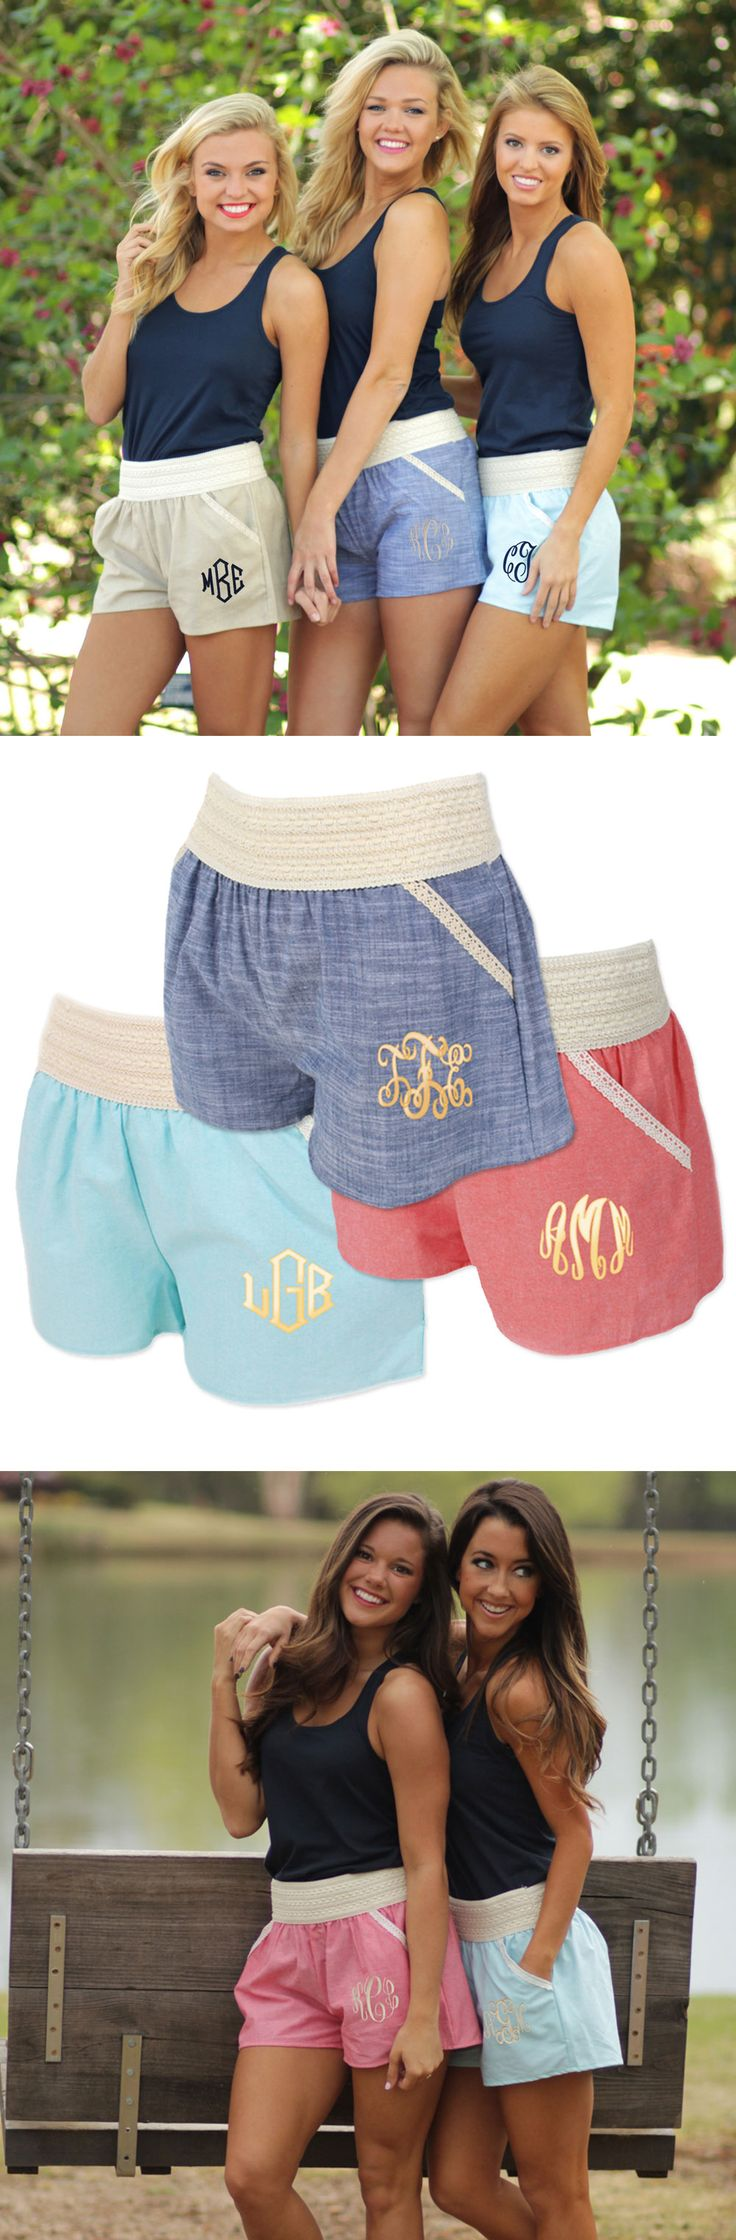 """Who wears short shorts?"" Look fabulous in these adorable monogrammed crochet trim shorts! #marleylilly"